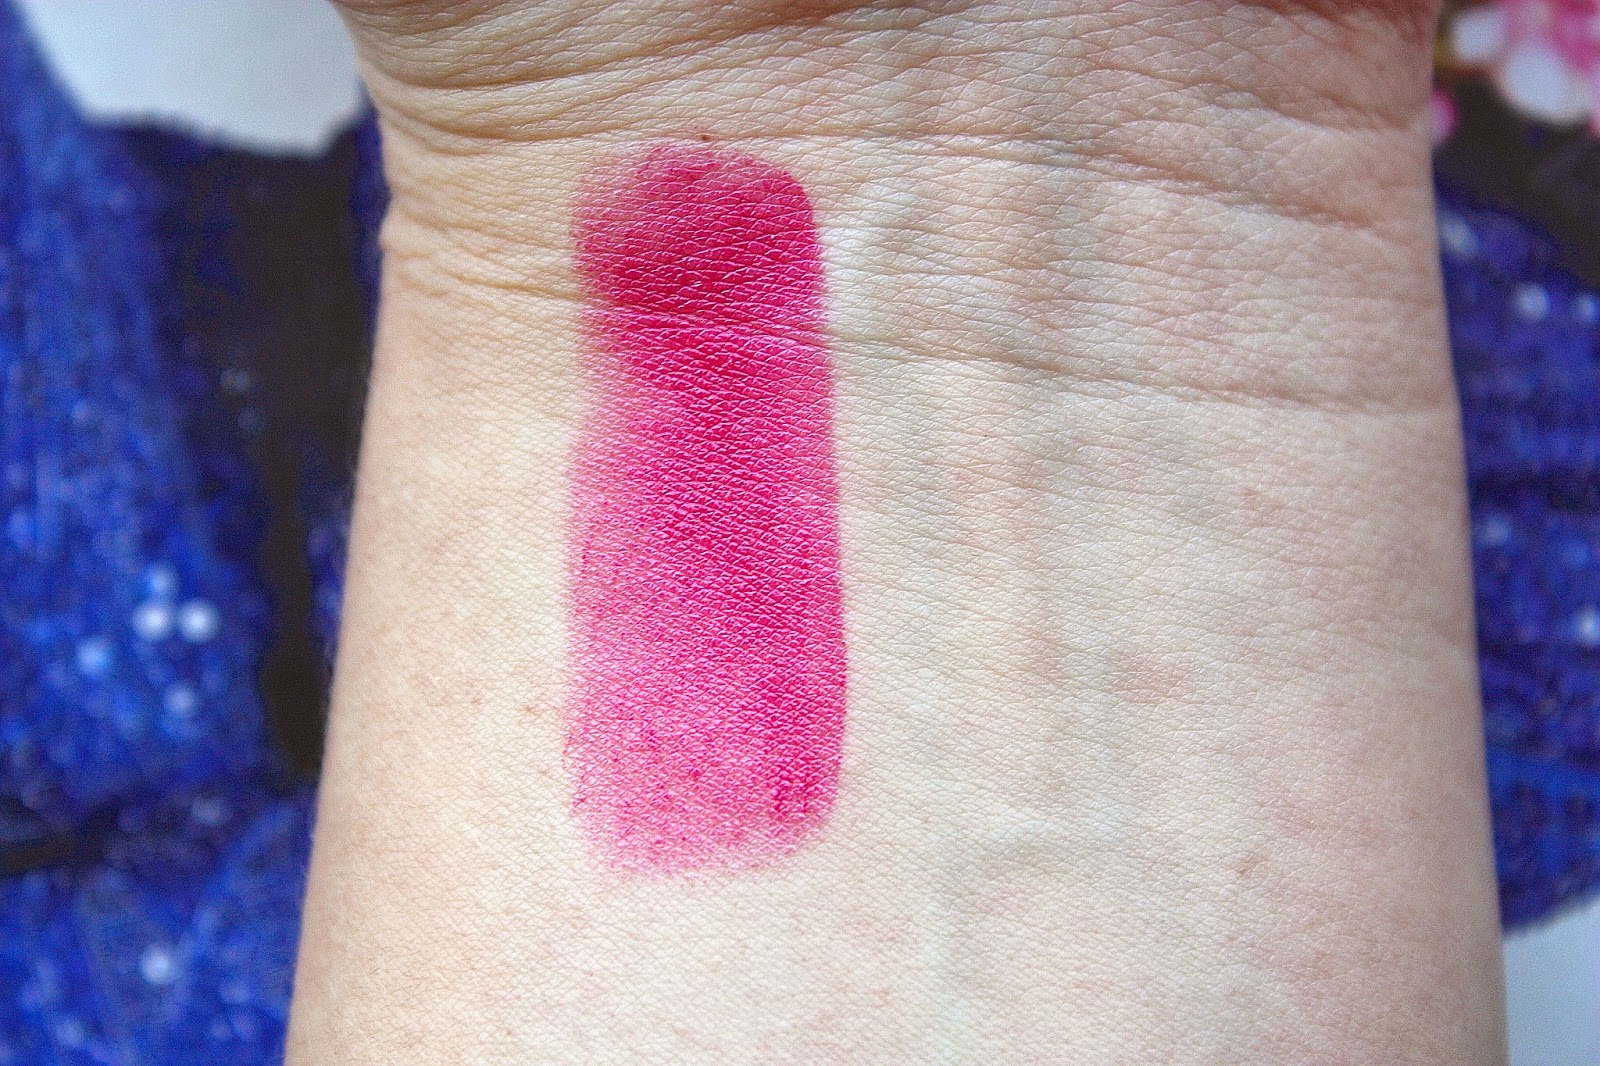 Bobbi Browns Sheer Lip Colour in 'Hot Raspberry' Swatches